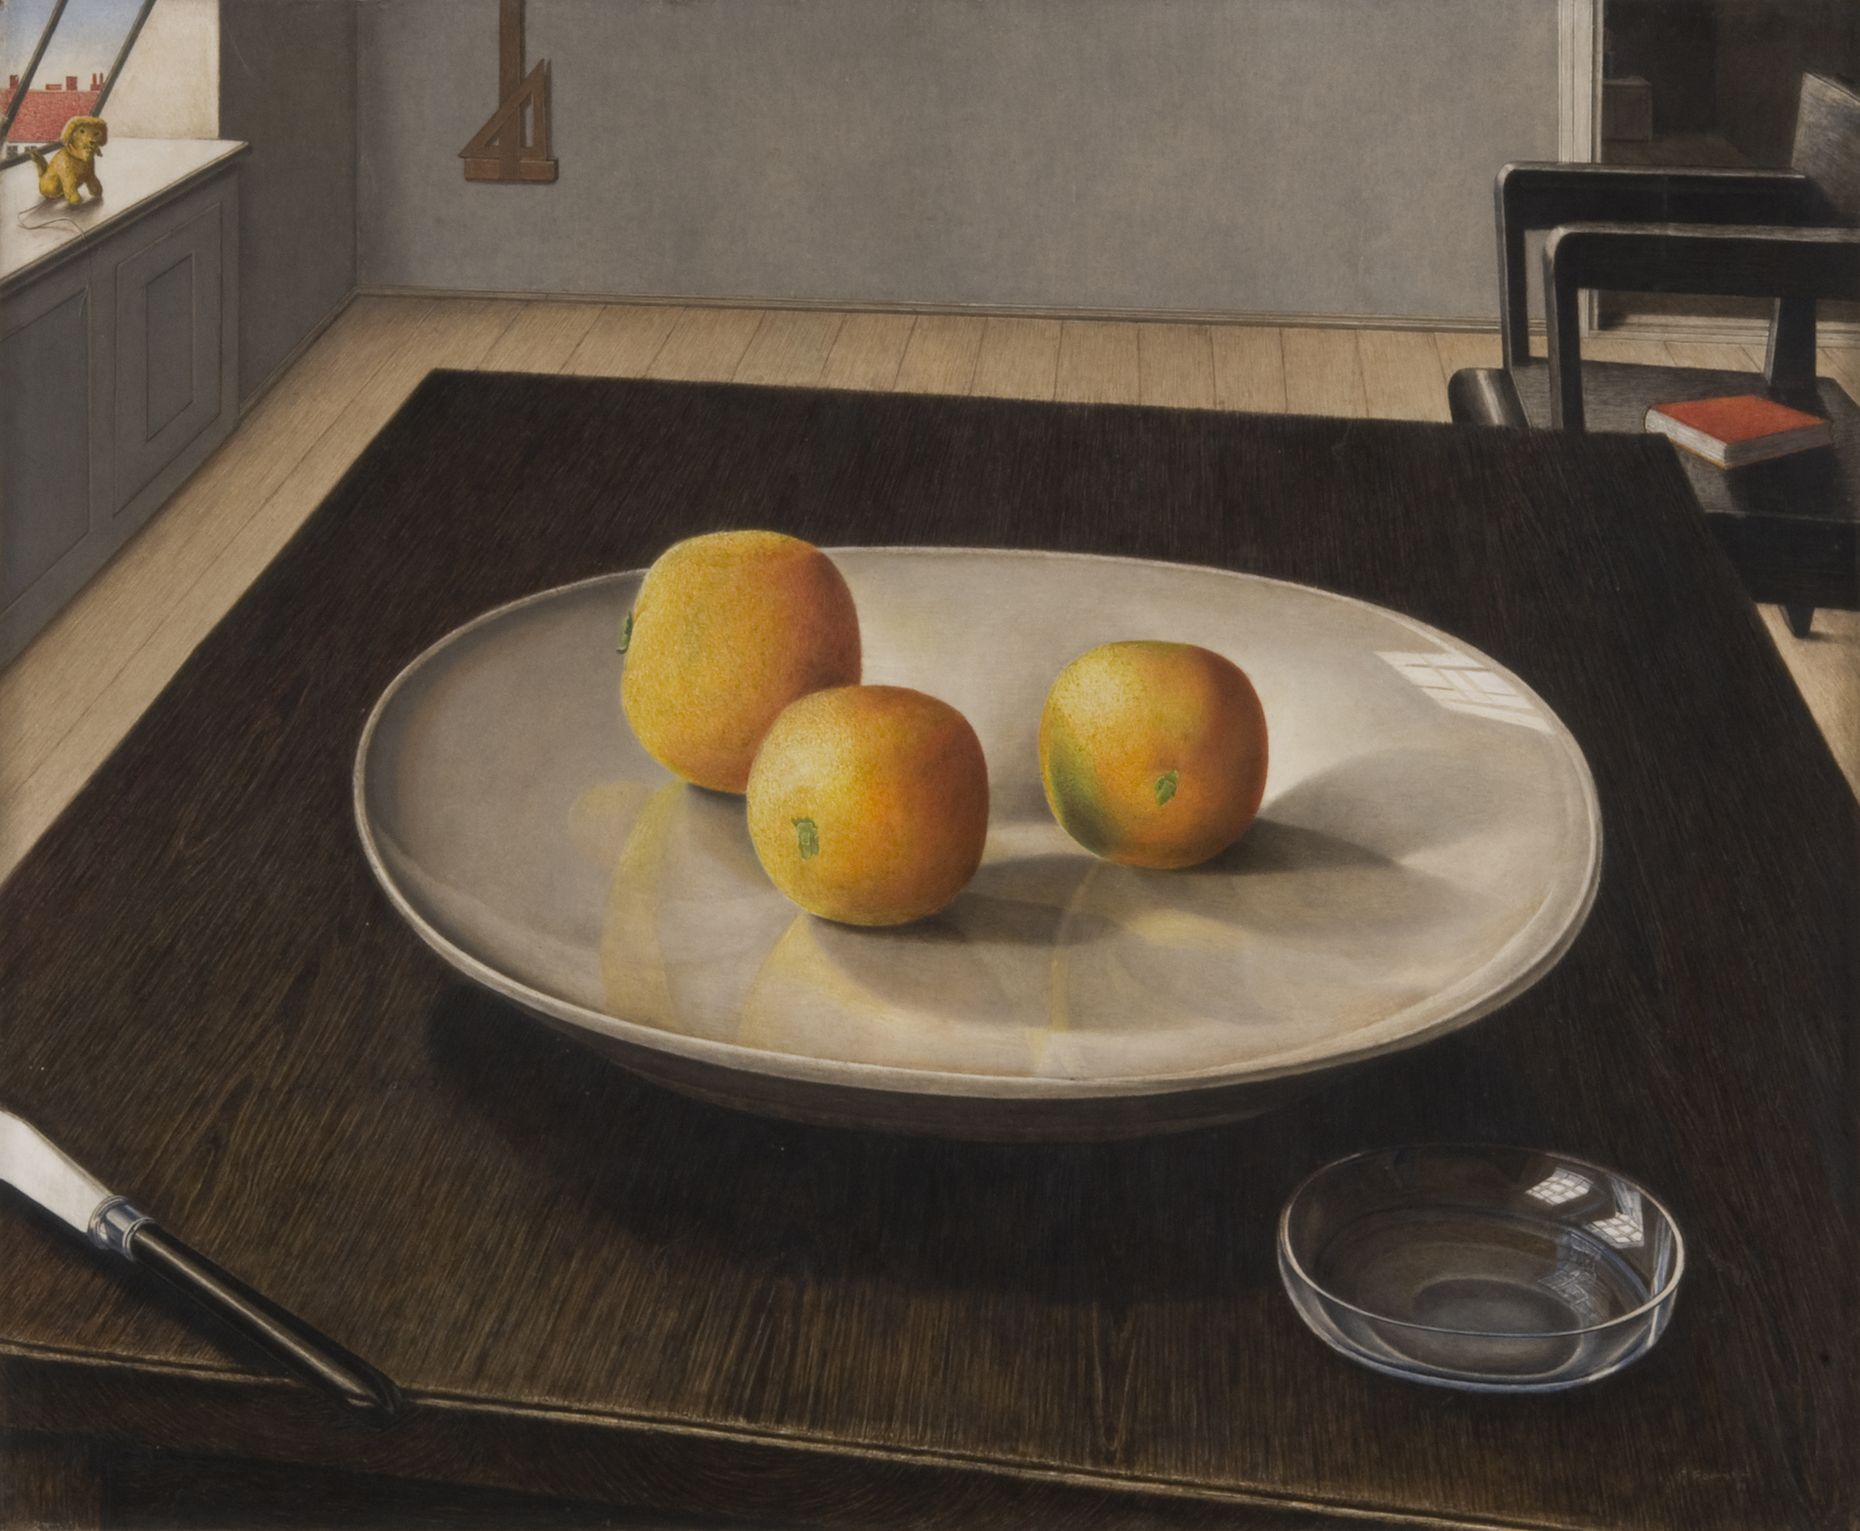 Peter Foerster, Still Life with Oranges, around 1924